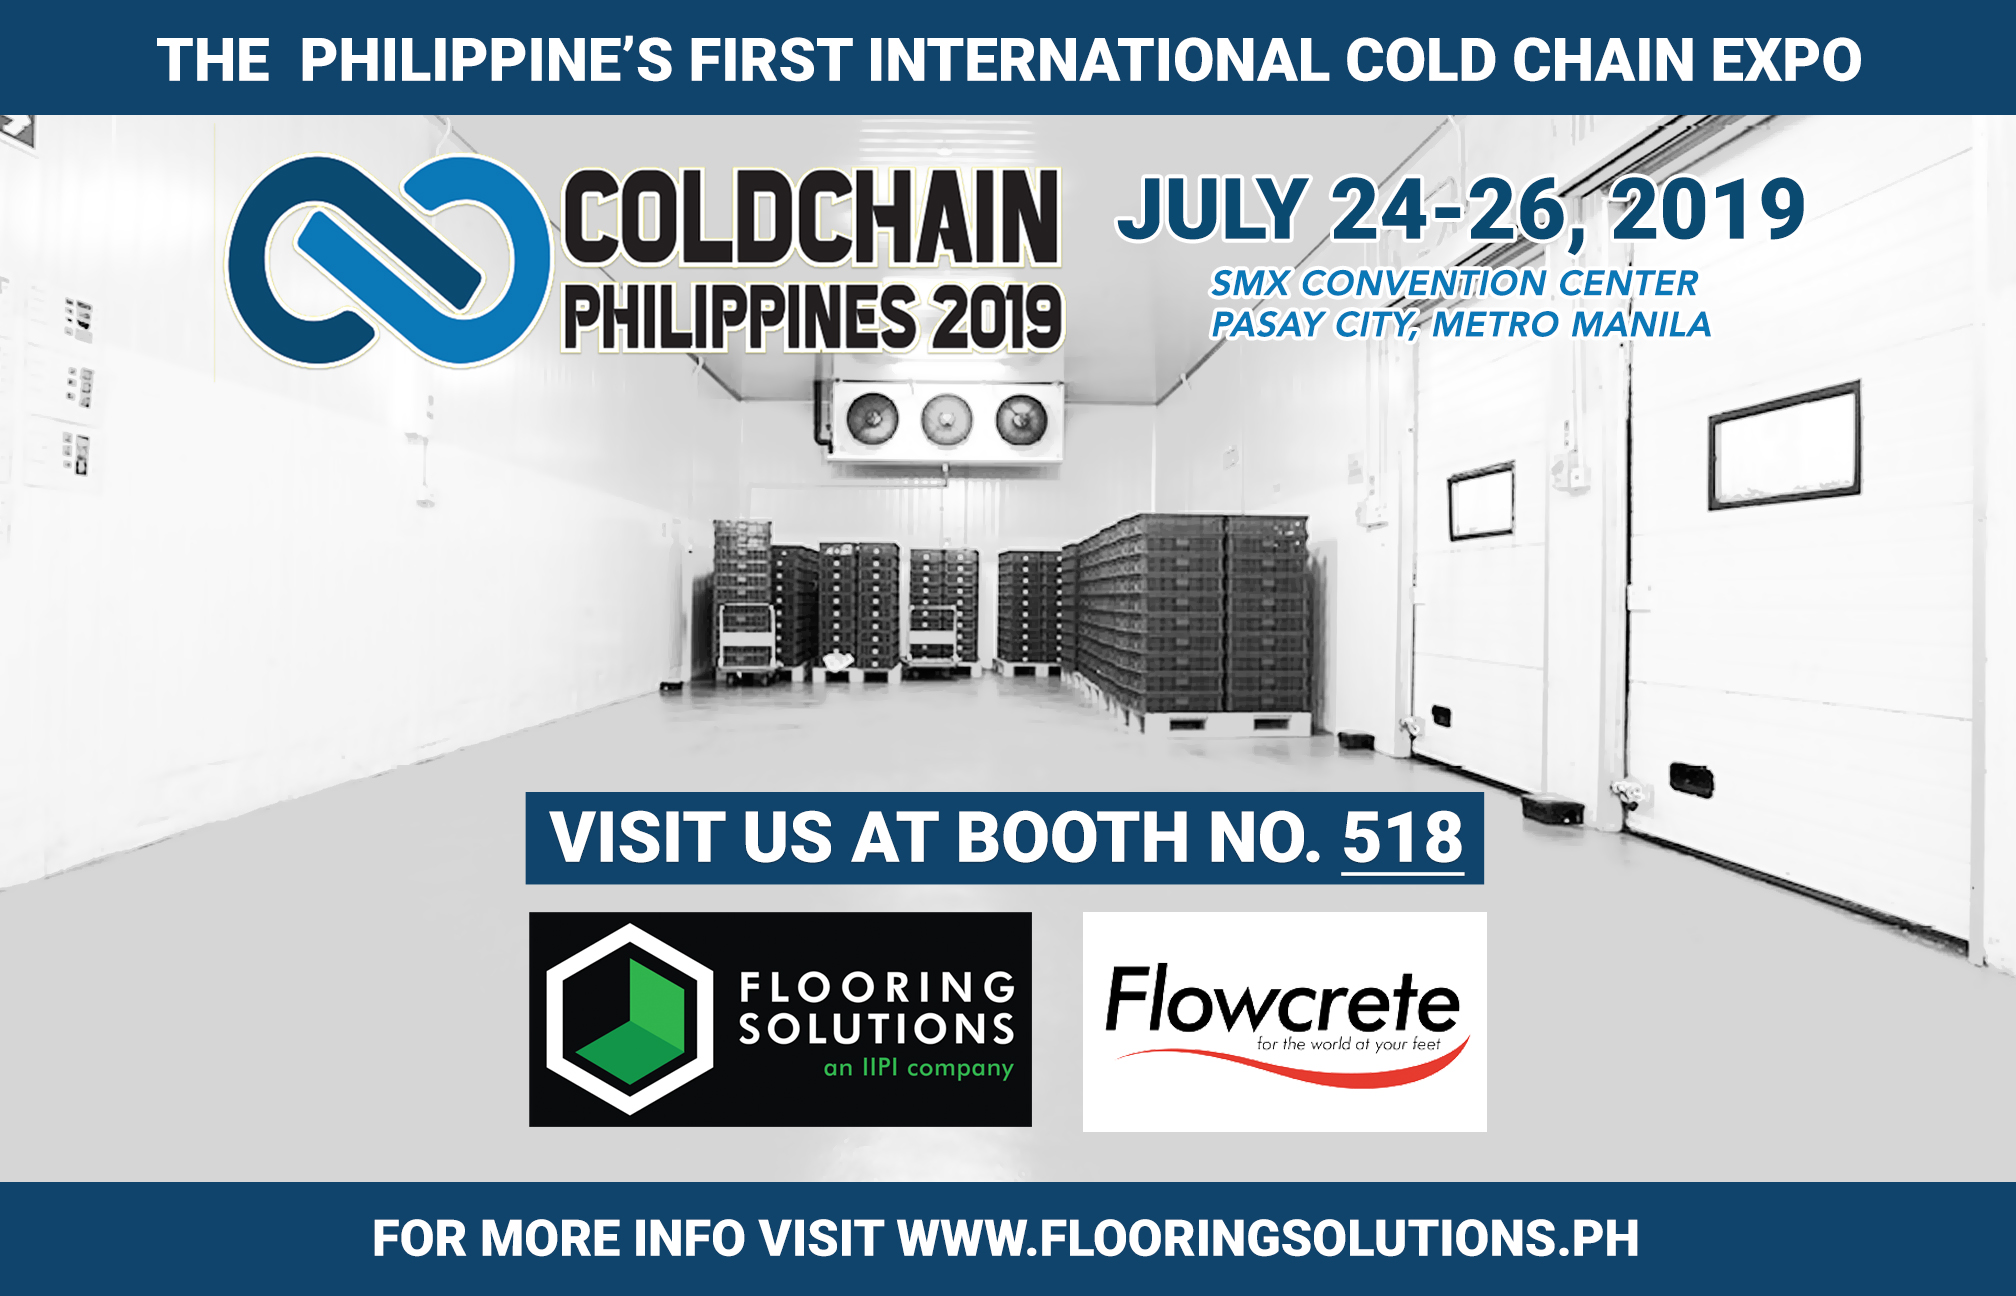 Flooring Solutions Joins Cold Chain Philippines 2019